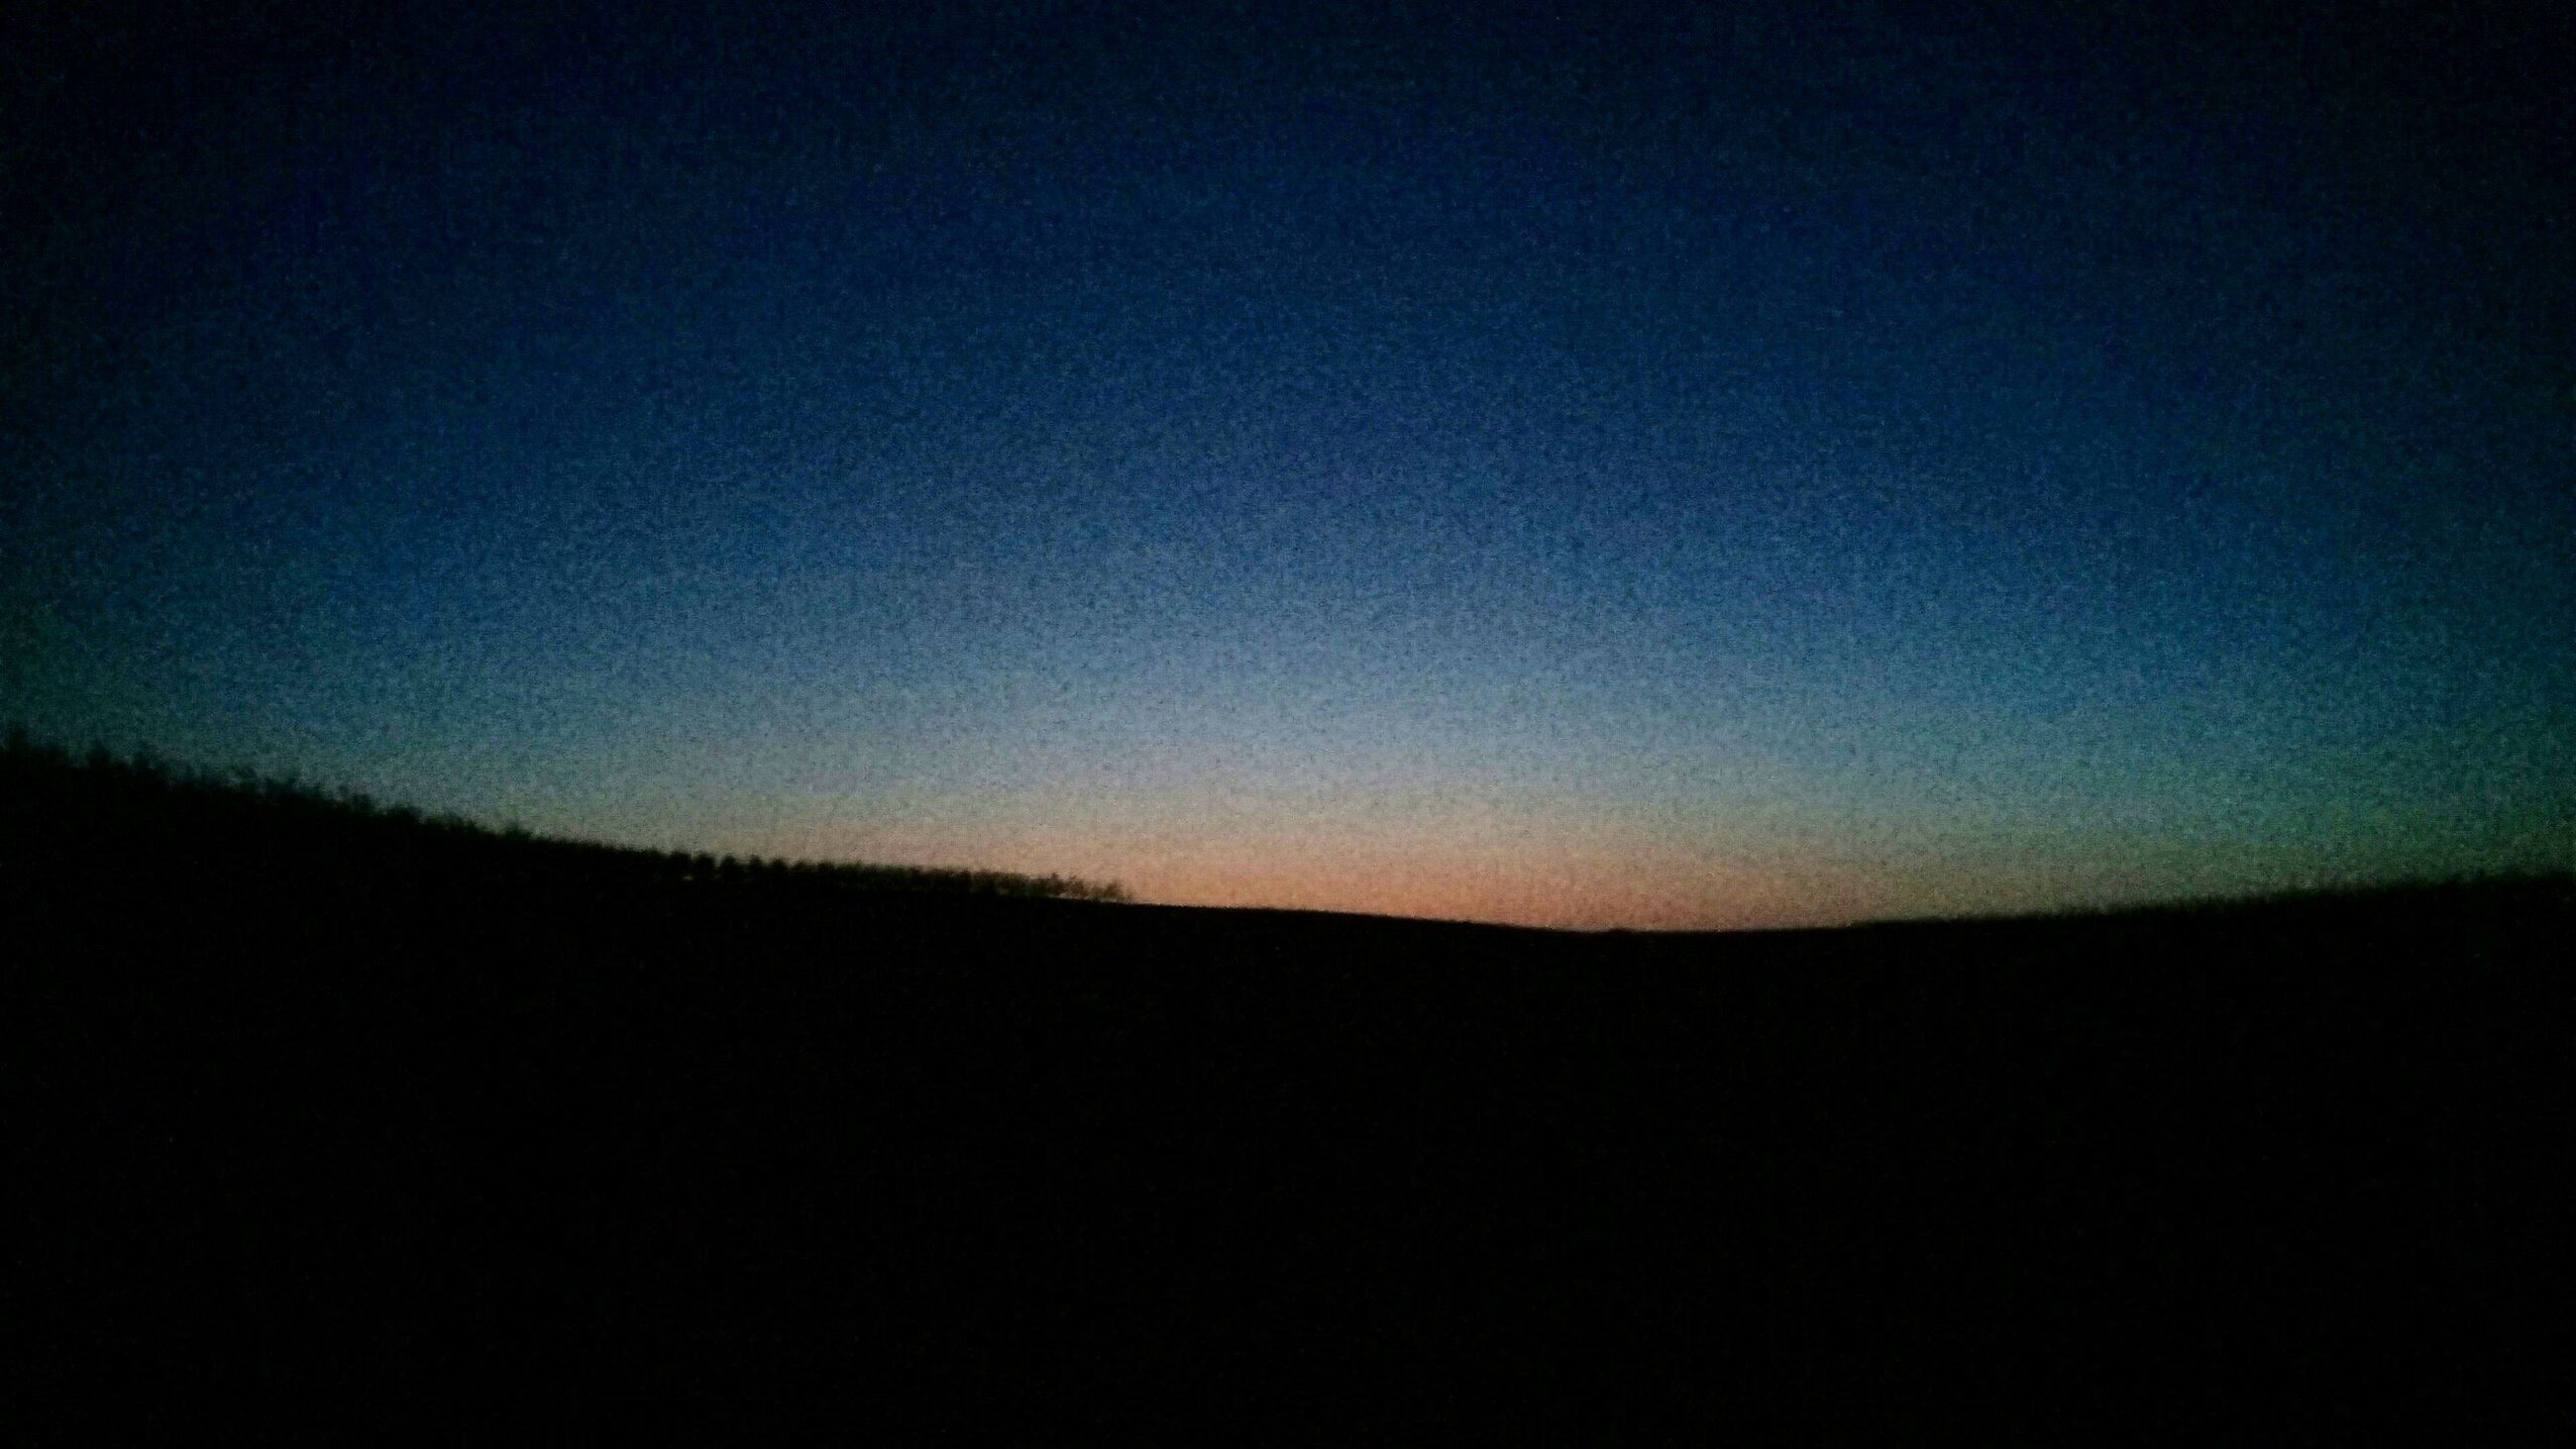 silhouette, nature, clear sky, dark, no people, tranquility, tranquil scene, landscape, beauty in nature, scenics, night, sky, outdoors